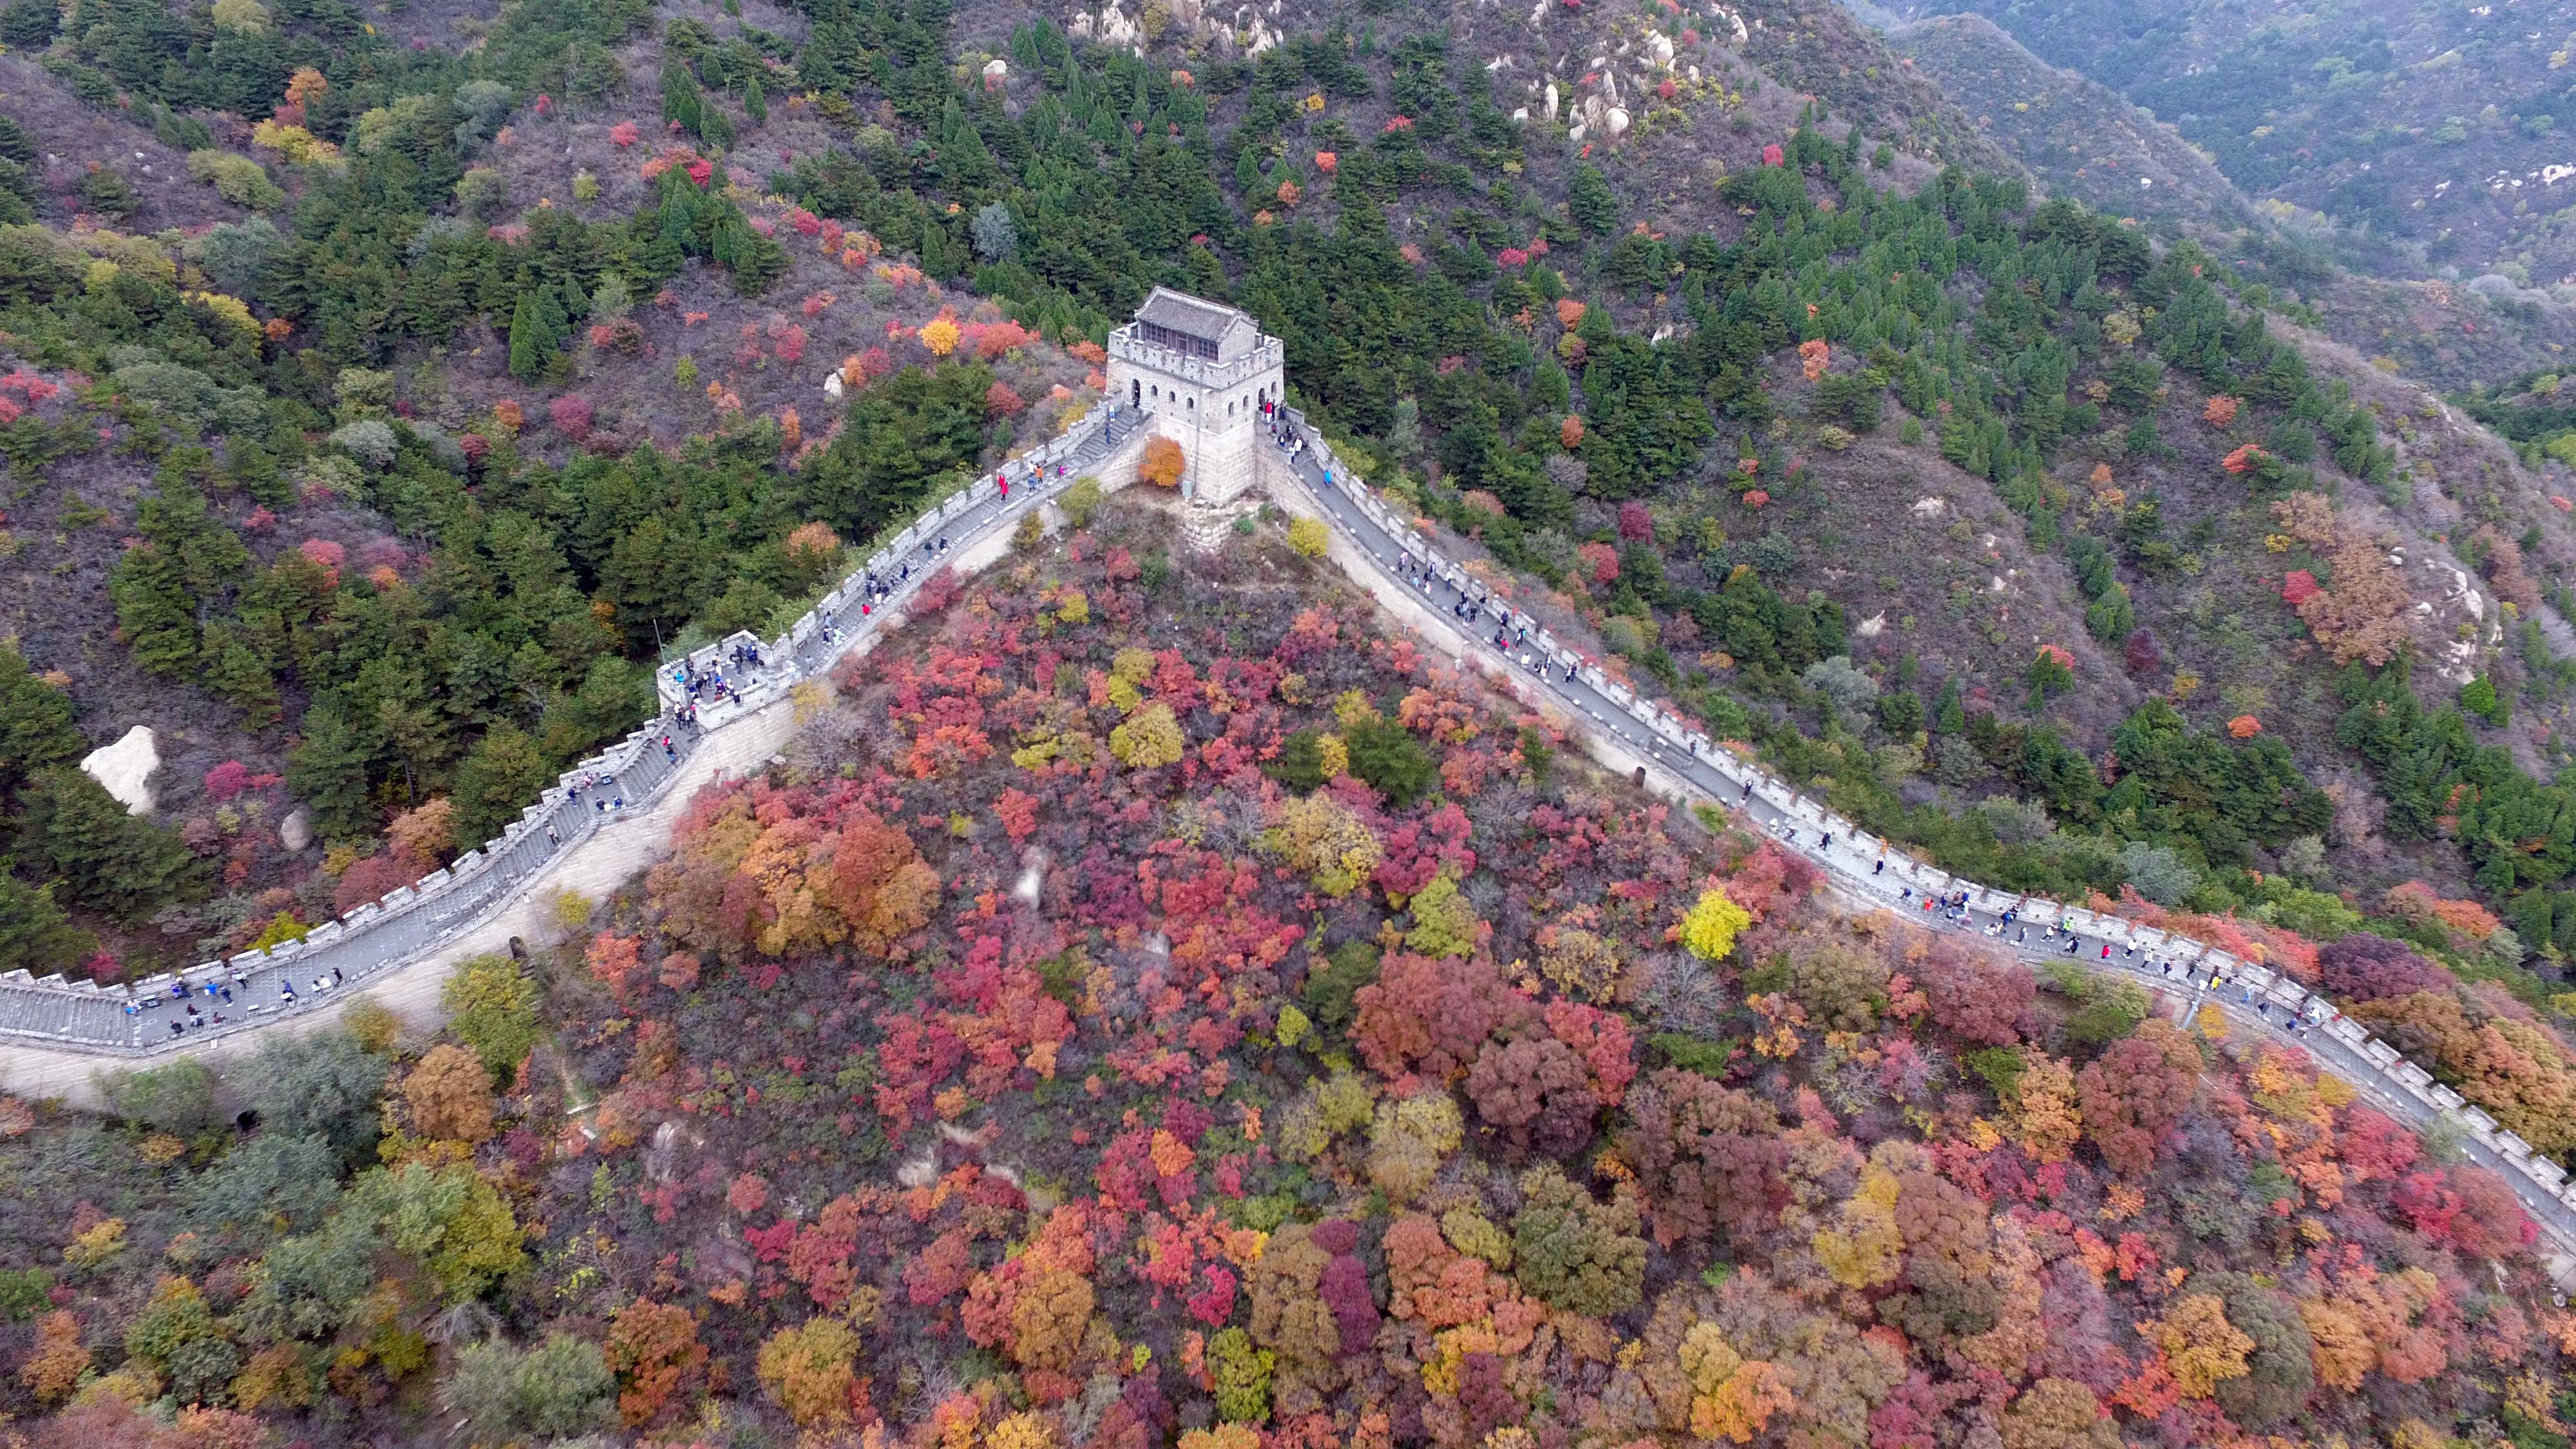 Slide 68 of 73: ourists visit the Badaling Great Wall in Beijing, capital of China, Oct. 23, 2016. Drones have been in common use in photojournalism in 2016. (Xinhua/Chen Yehua via Getty Images)